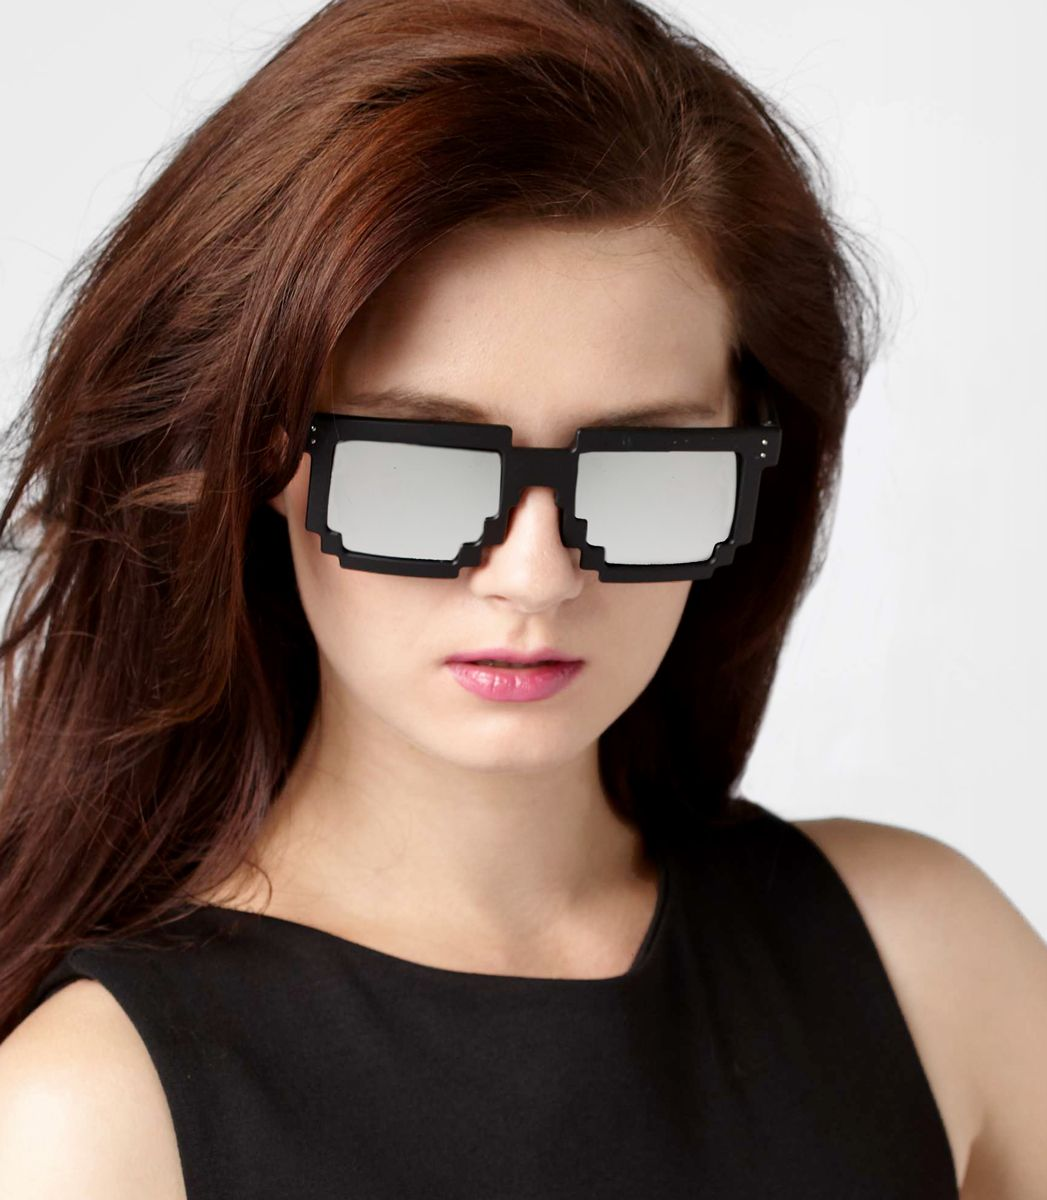 Pixel Frame Sunglasses. I NEED THESE. I need these right